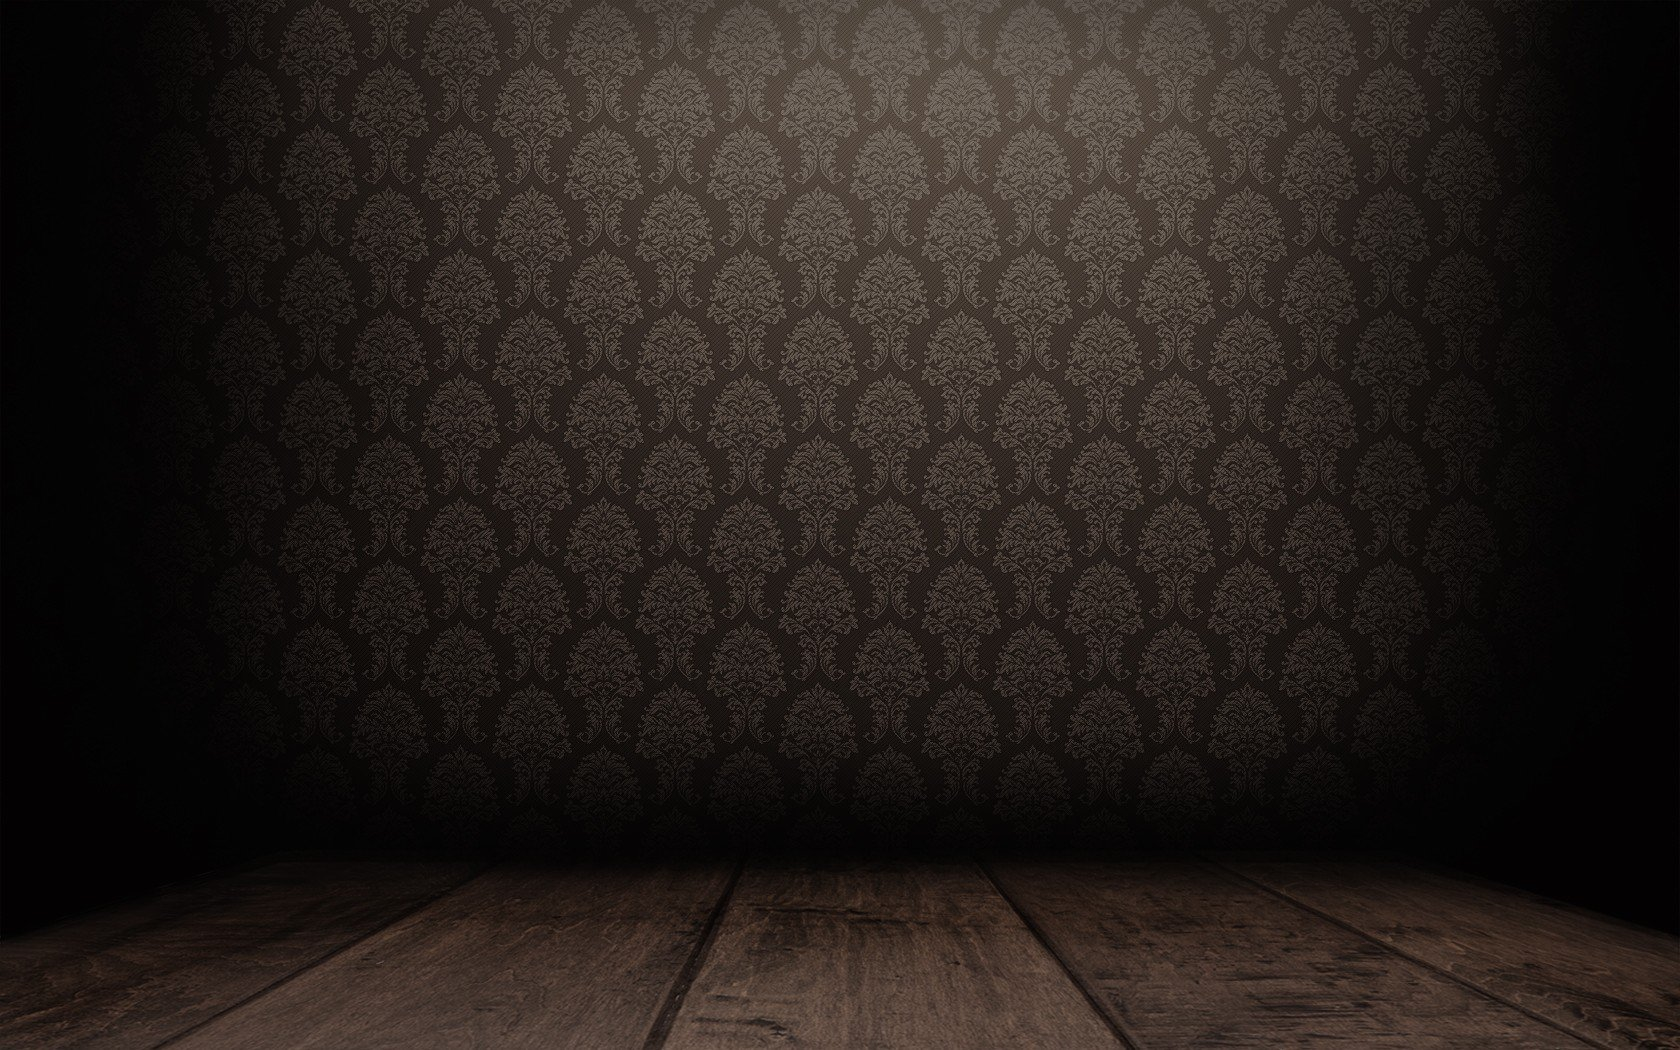 Floor patterns brown empty room dark tranquillity for 3d room wallpaper background